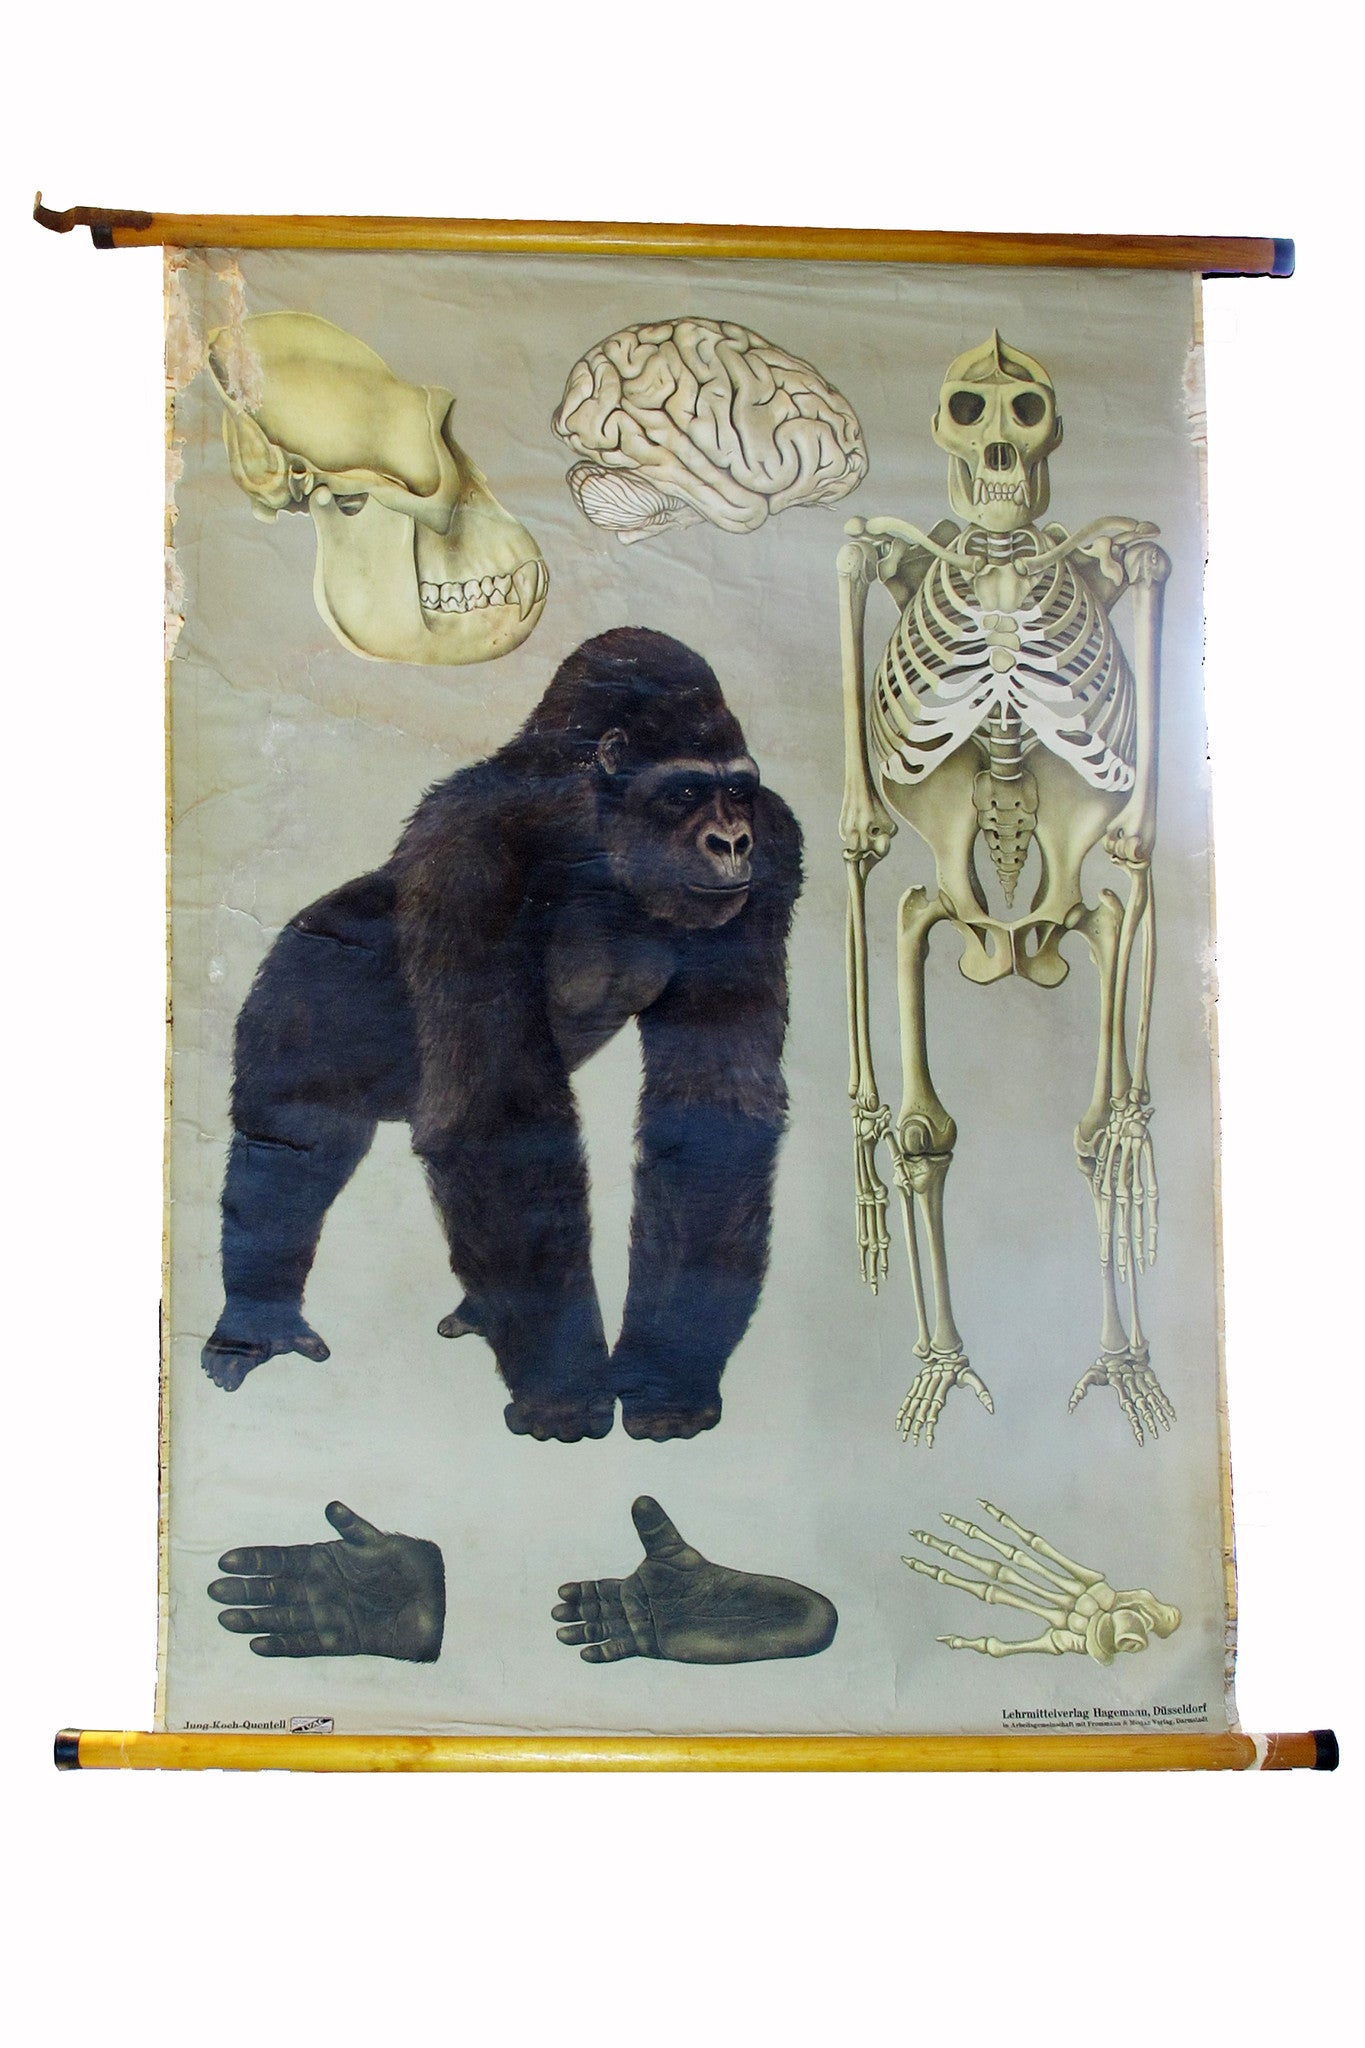 X Large linen backed wall chart of a study of a gorilla , early 20th century.